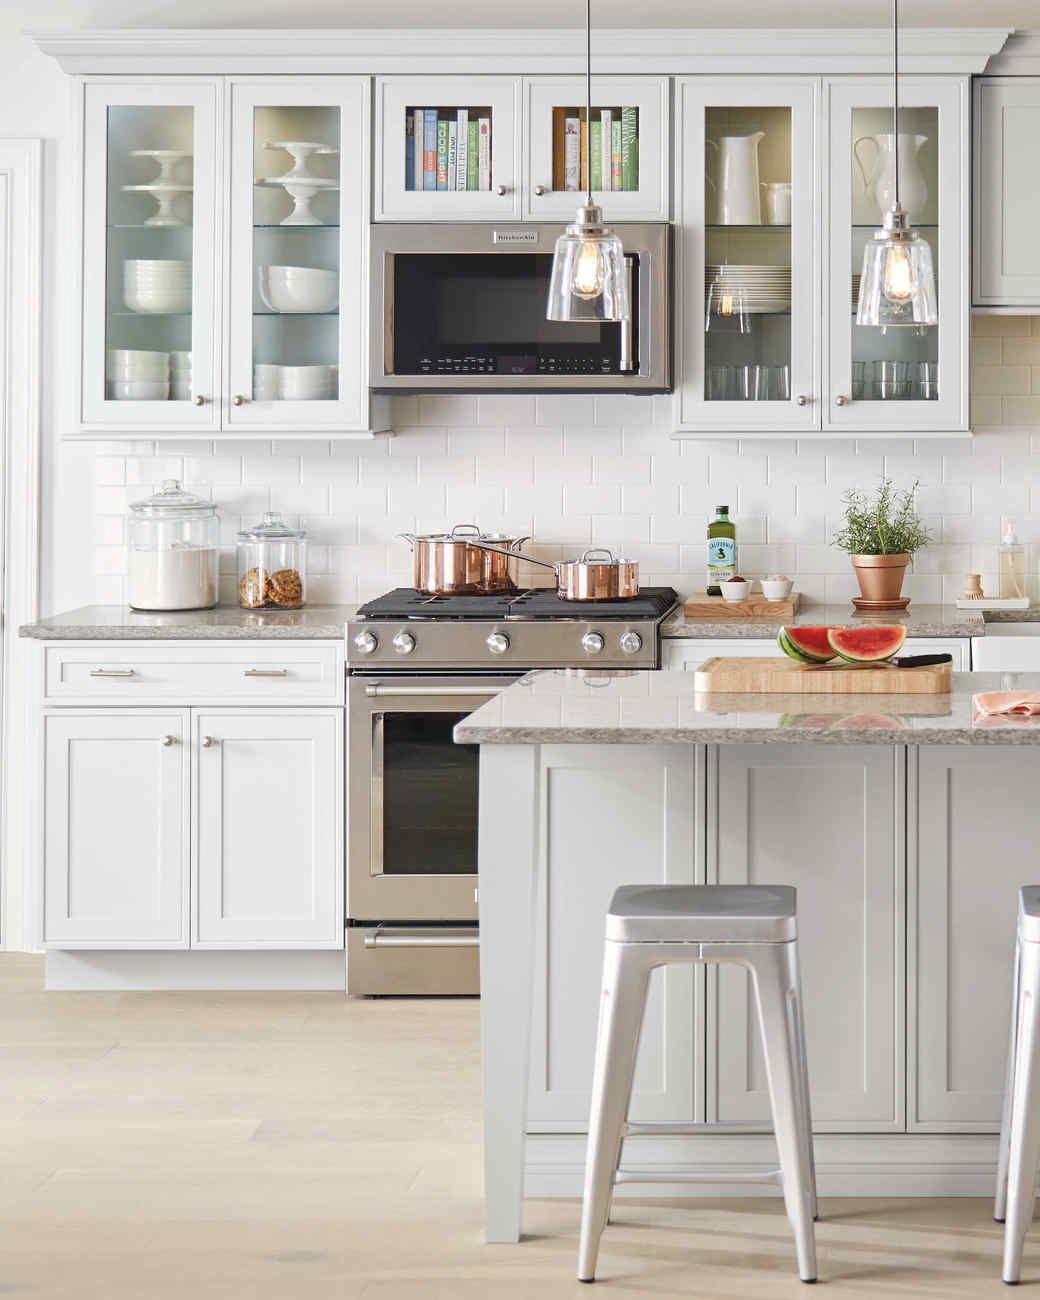 Kitchen Remodel Tips to Live By The Art of Functional